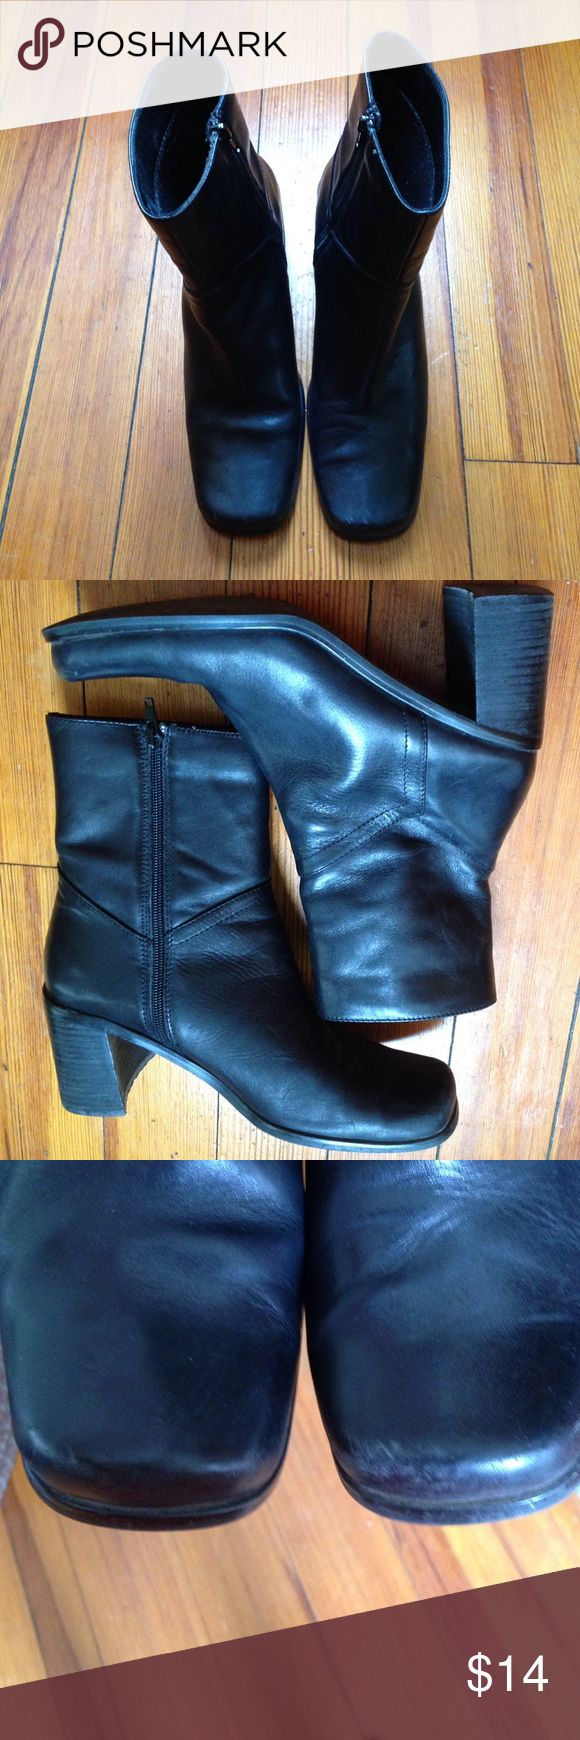 """Bass Black Boots Bass black side zip boots. Sz 9 1/2. Has about 2 1/2"""" heels. Excellent condition...does have a slight scuff mark on left foot boot as shown in 3rd picture. Leather Upper Balance Man Made. Bass Shoes Heeled Boots"""